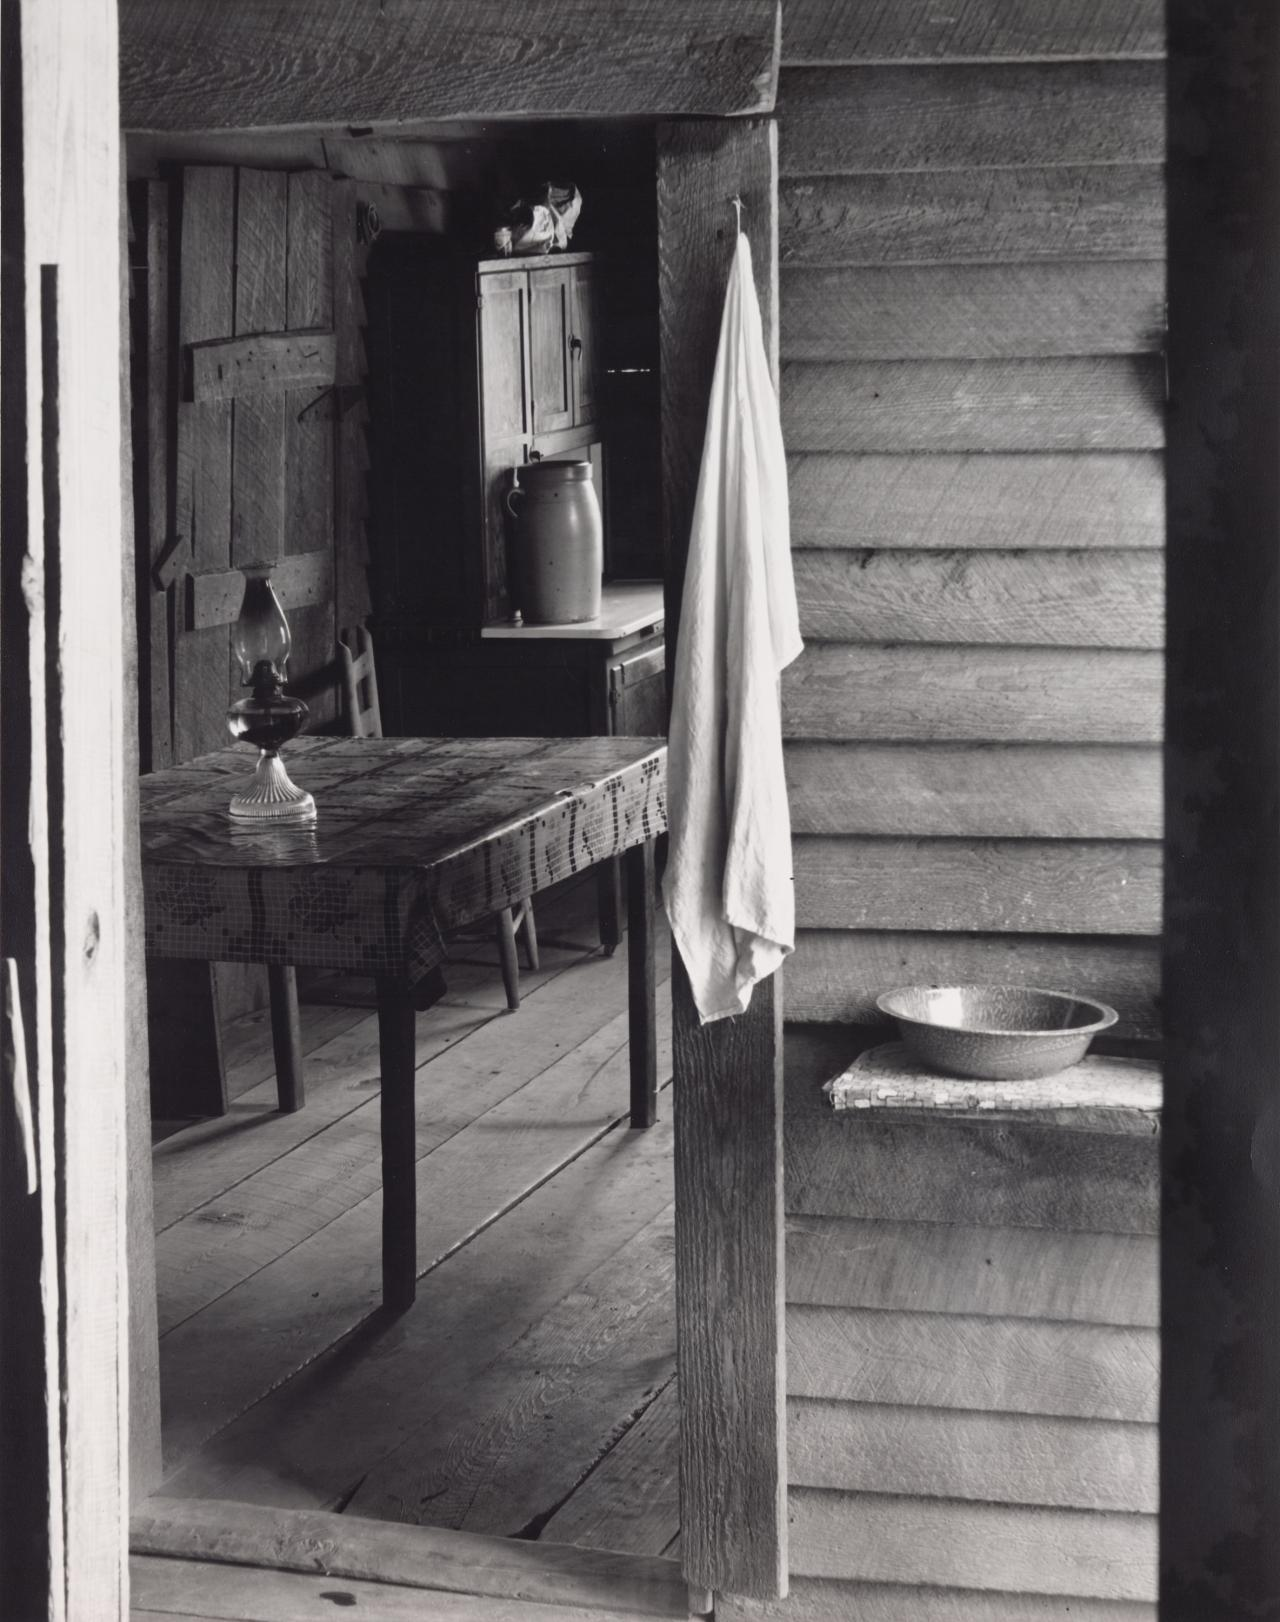 Washroom and dining area of Floyd Burroughs' home, Hale County, Alabama